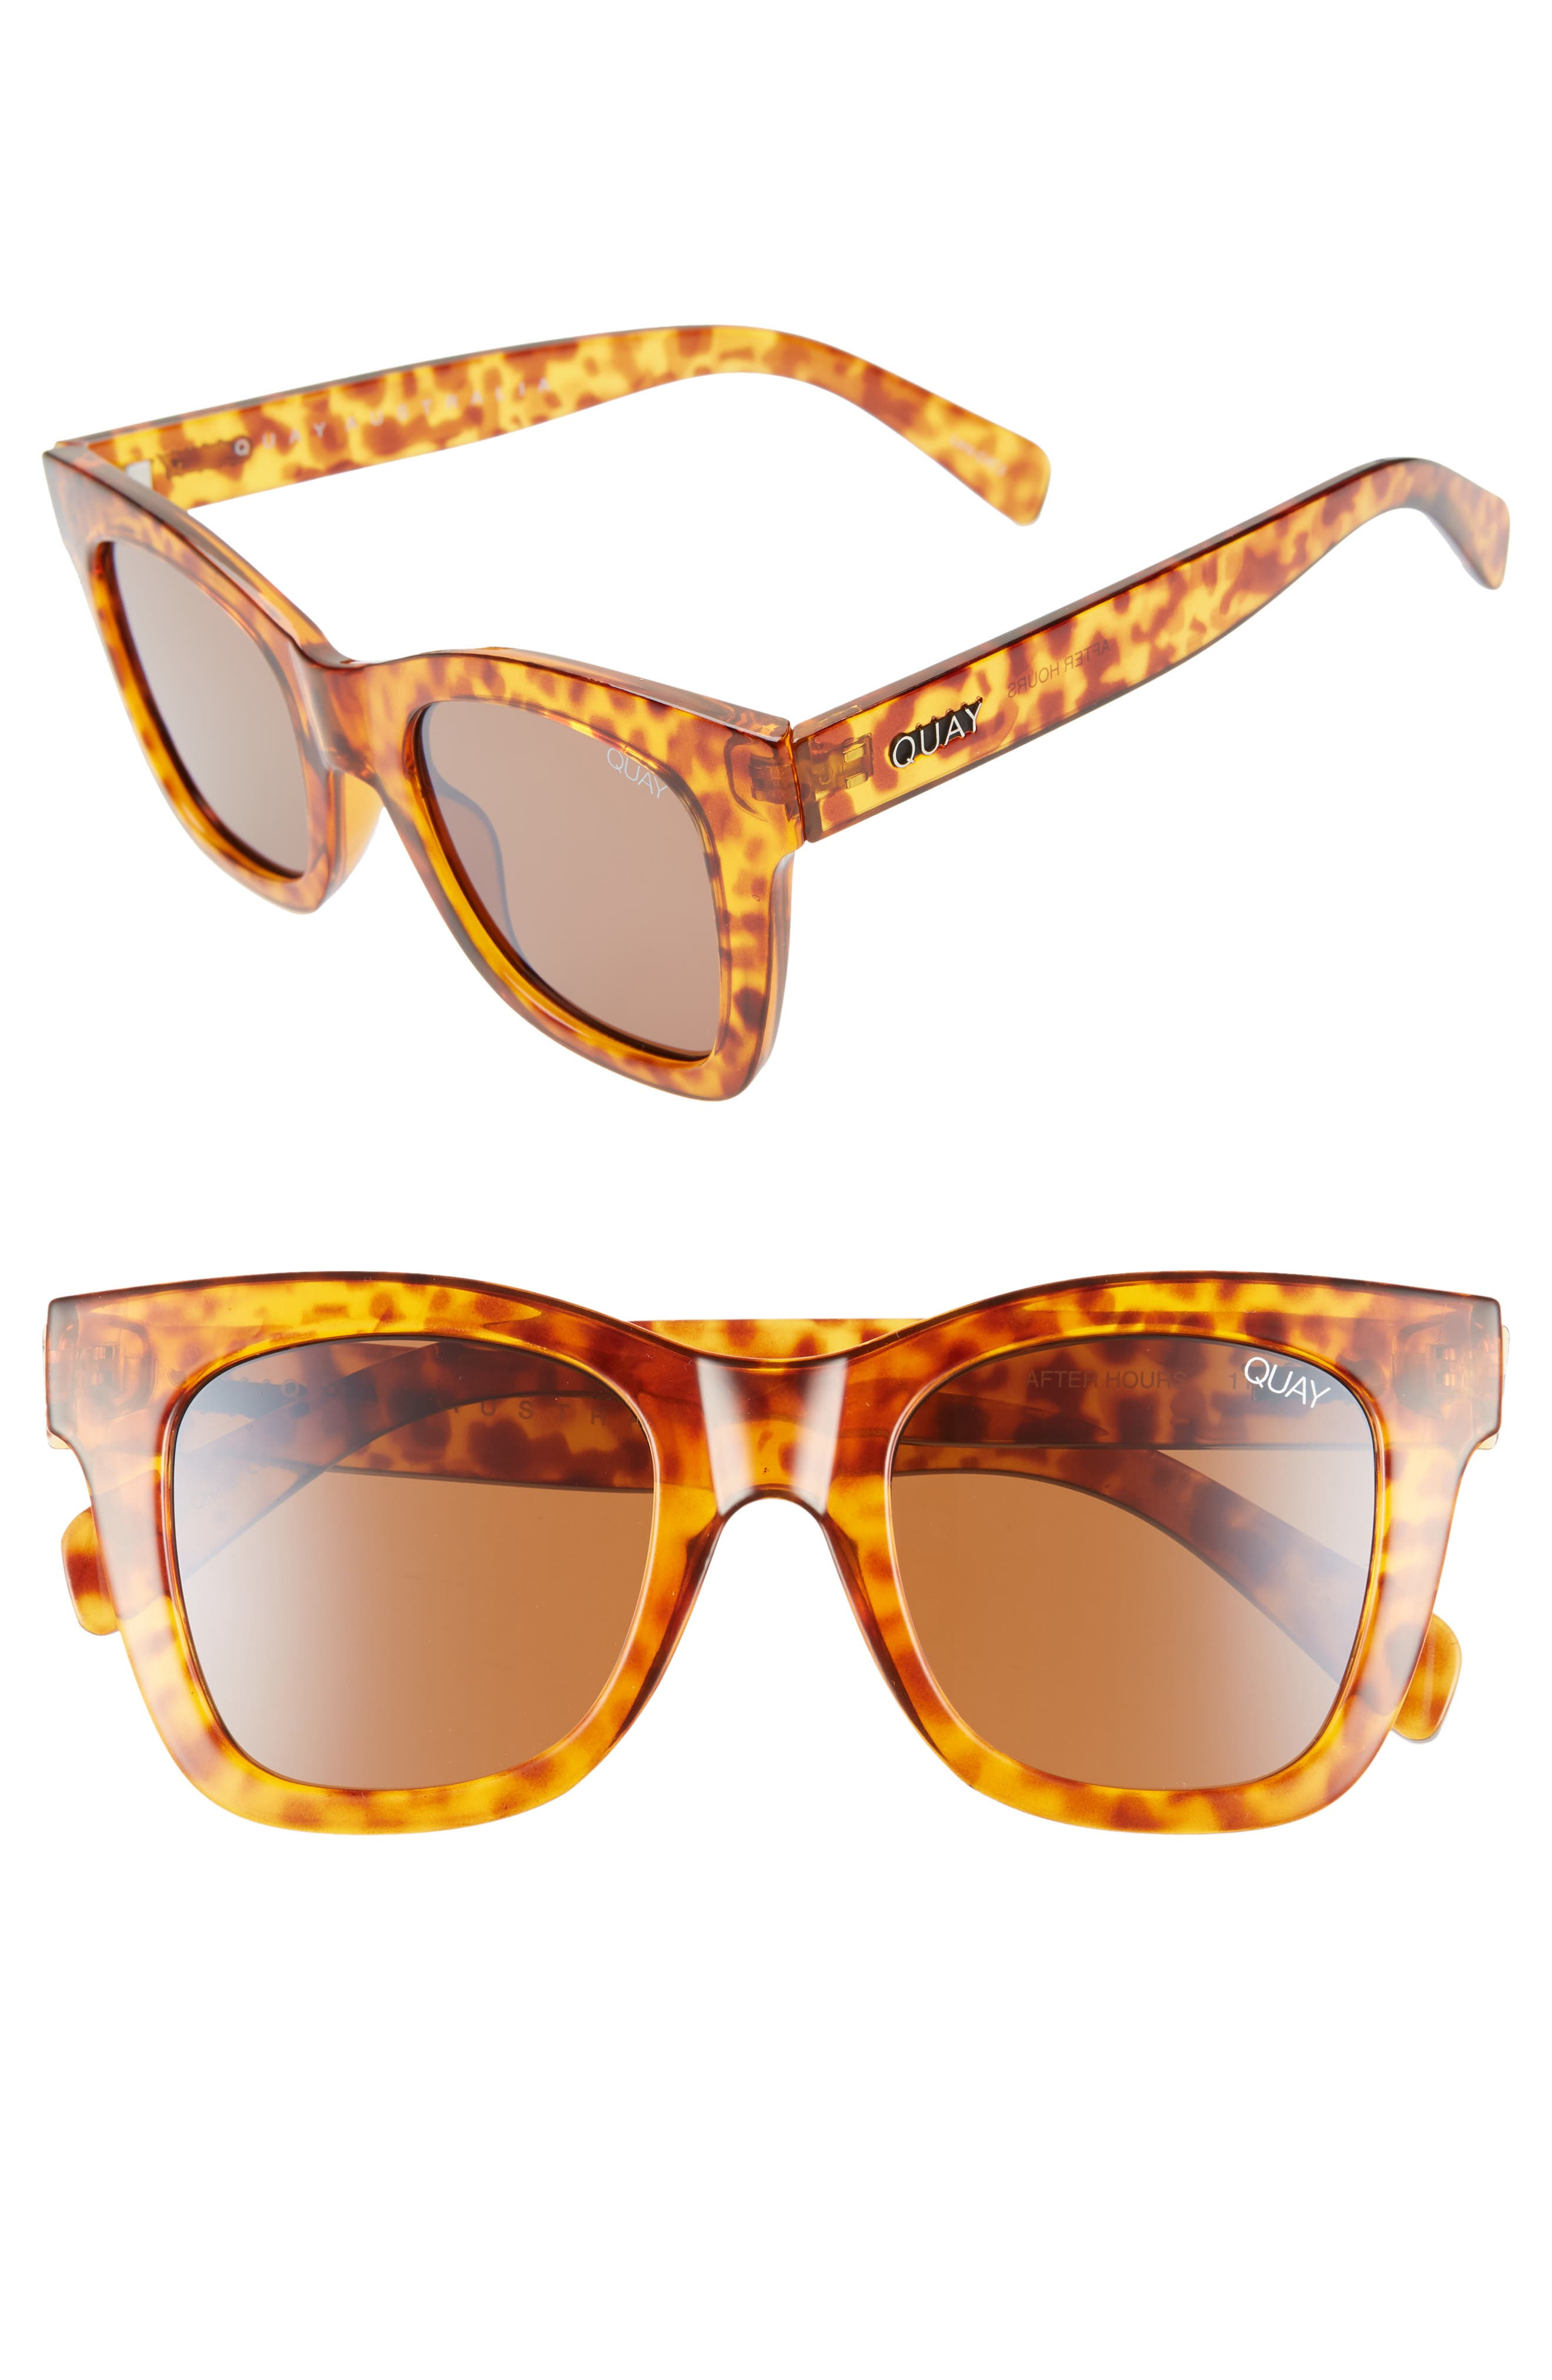 After Hours 50mm Square Sunglasses,                             Main thumbnail 1, color,                             ORANGE TORT / BROWN